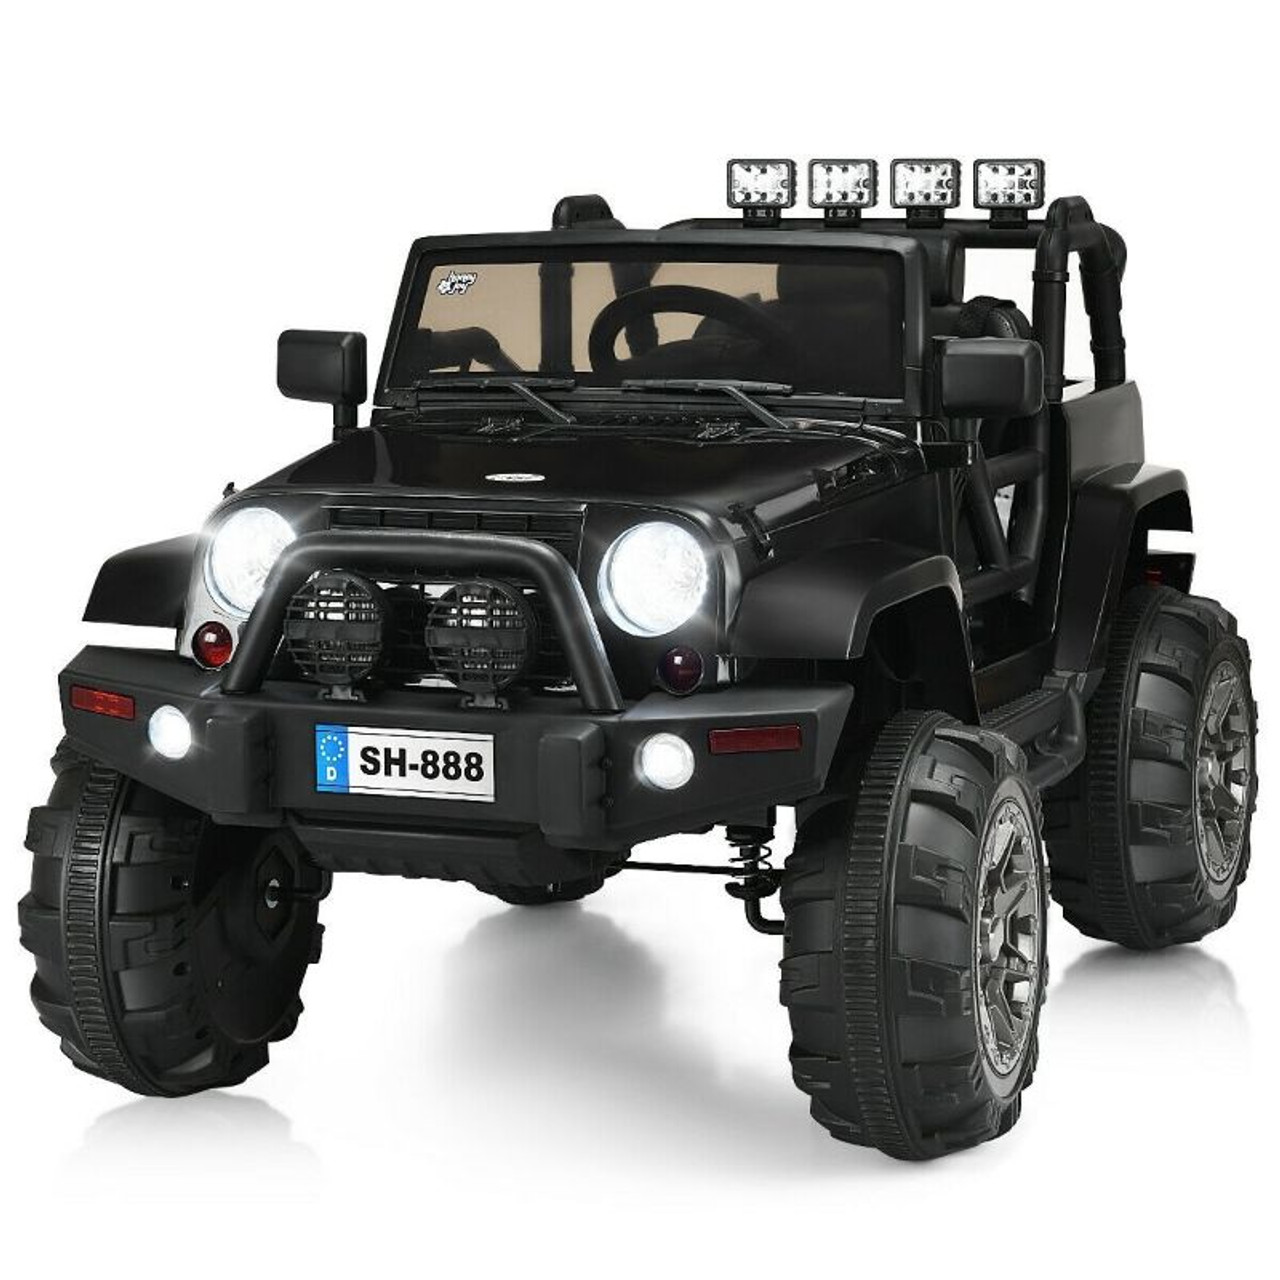 12V Kids Remote Control Riding Truck with LED Lights